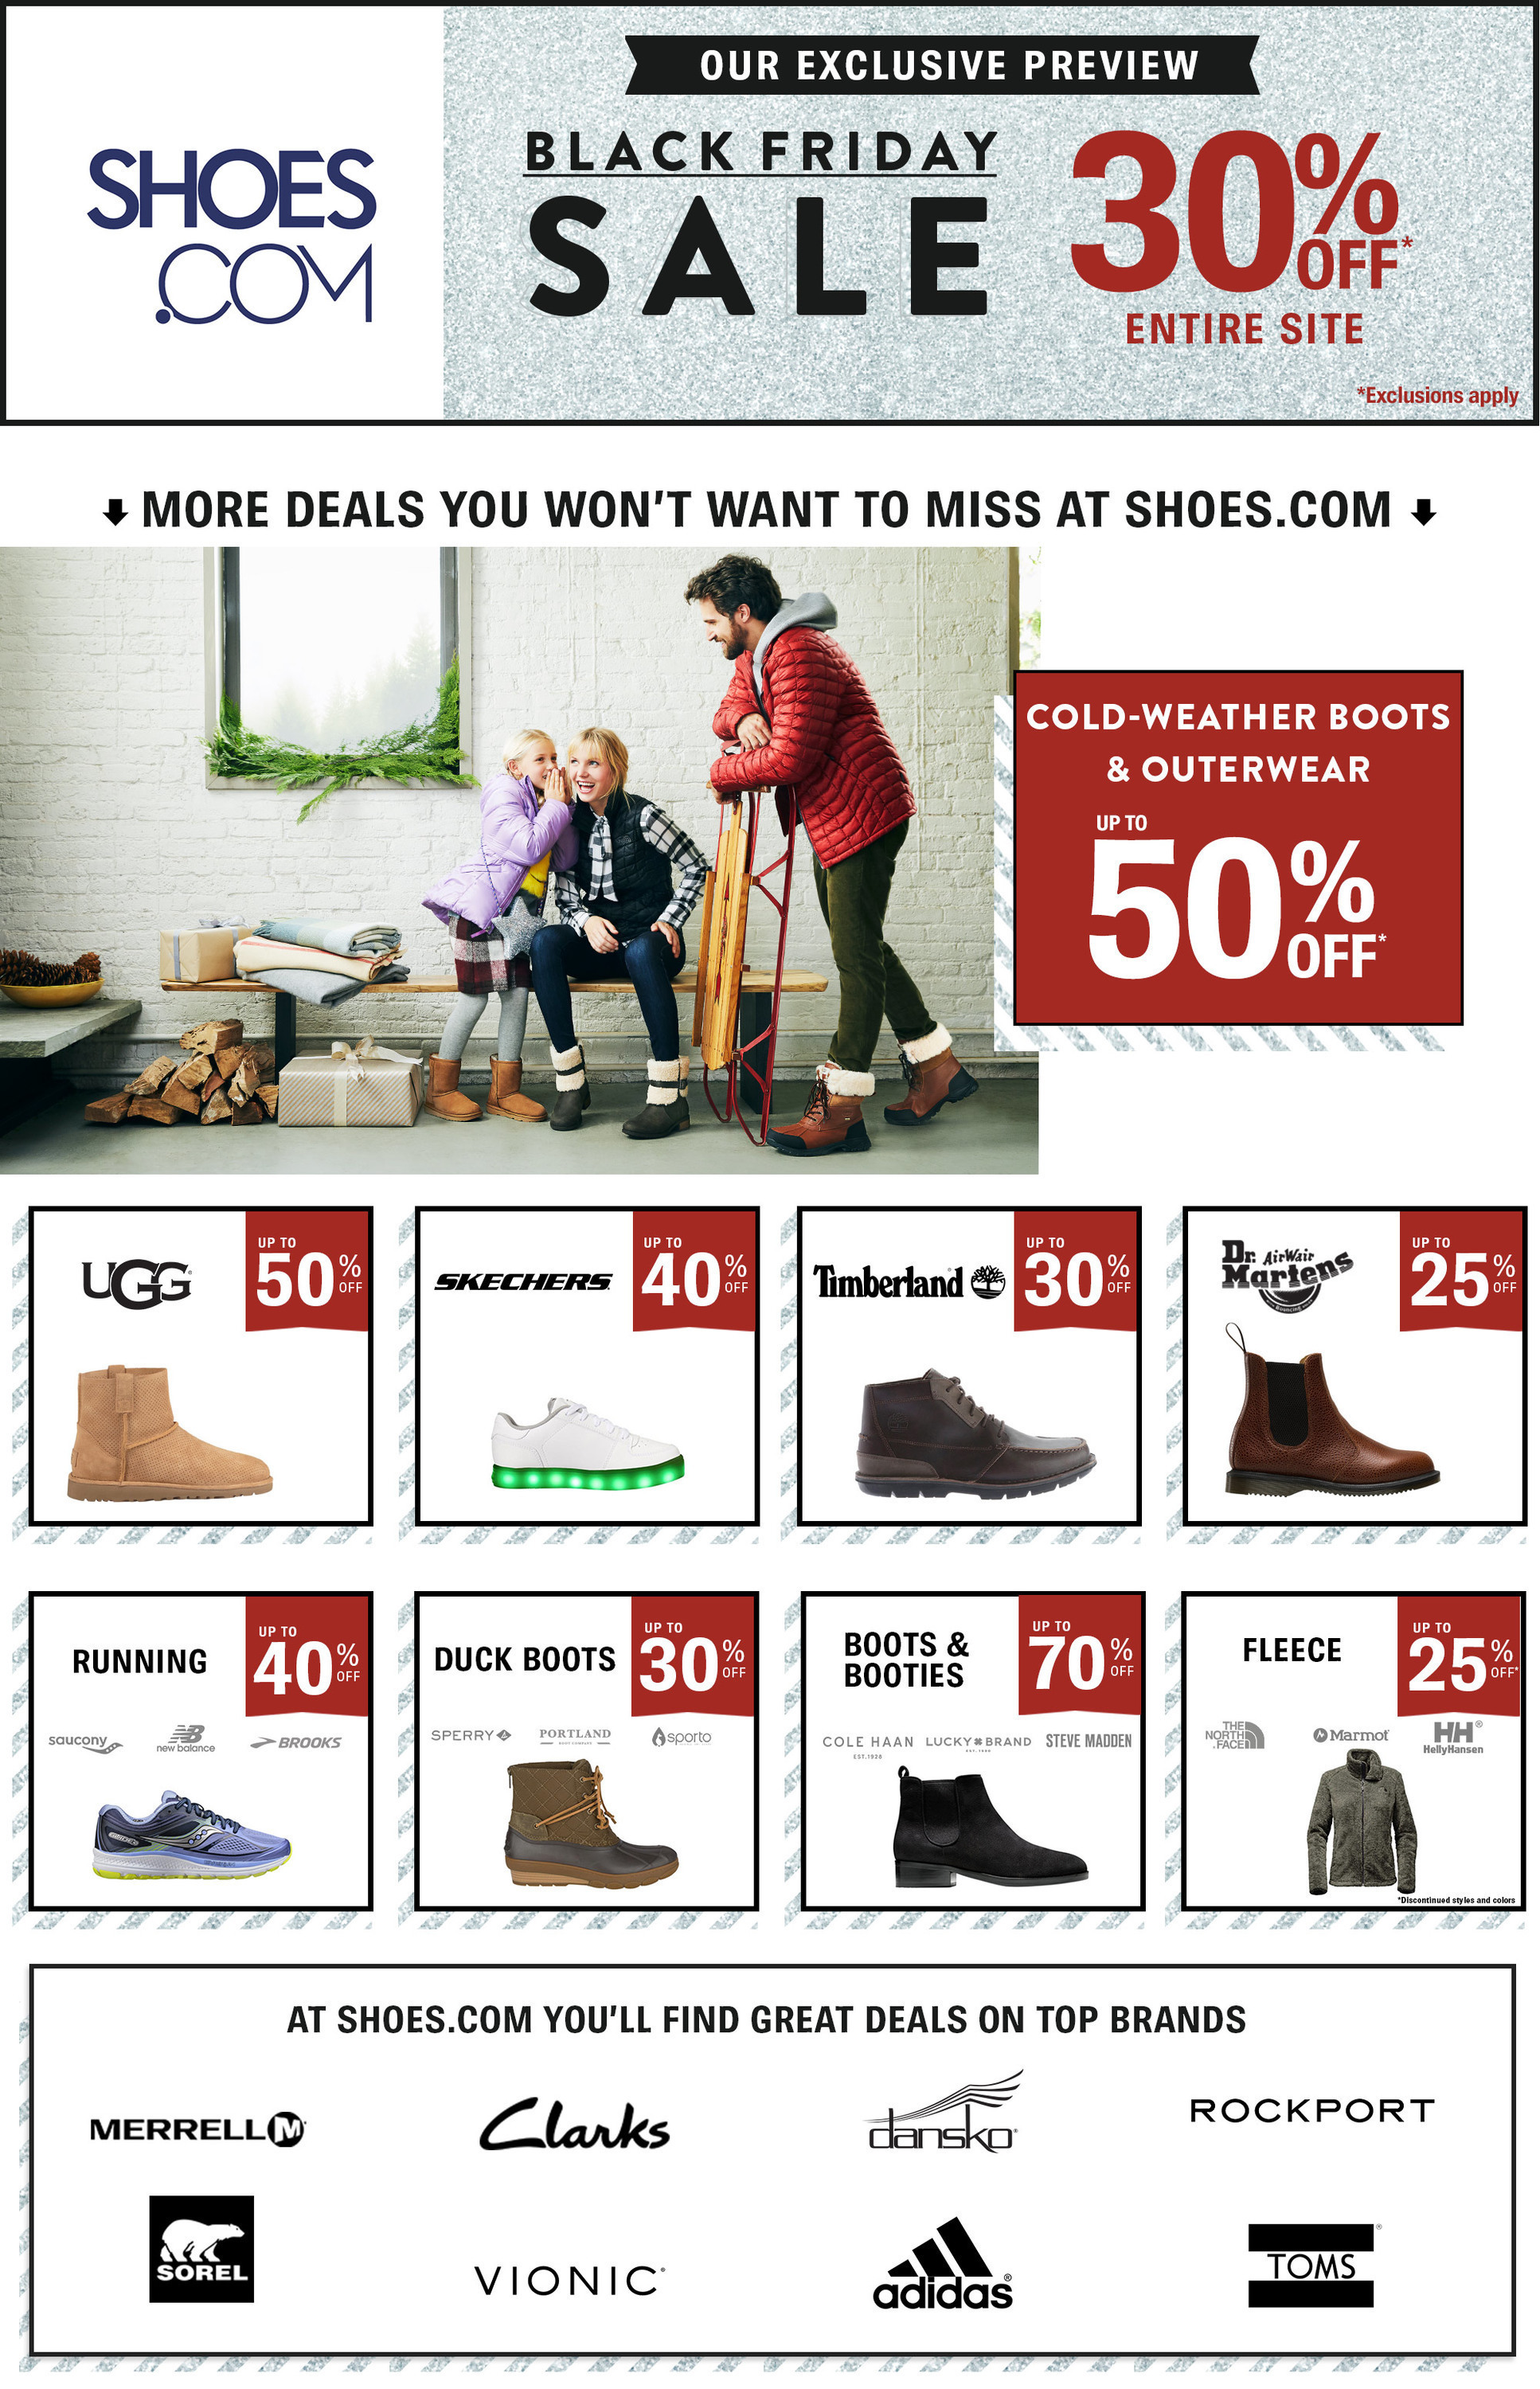 Shoes.com Black Friday 2020 Ad